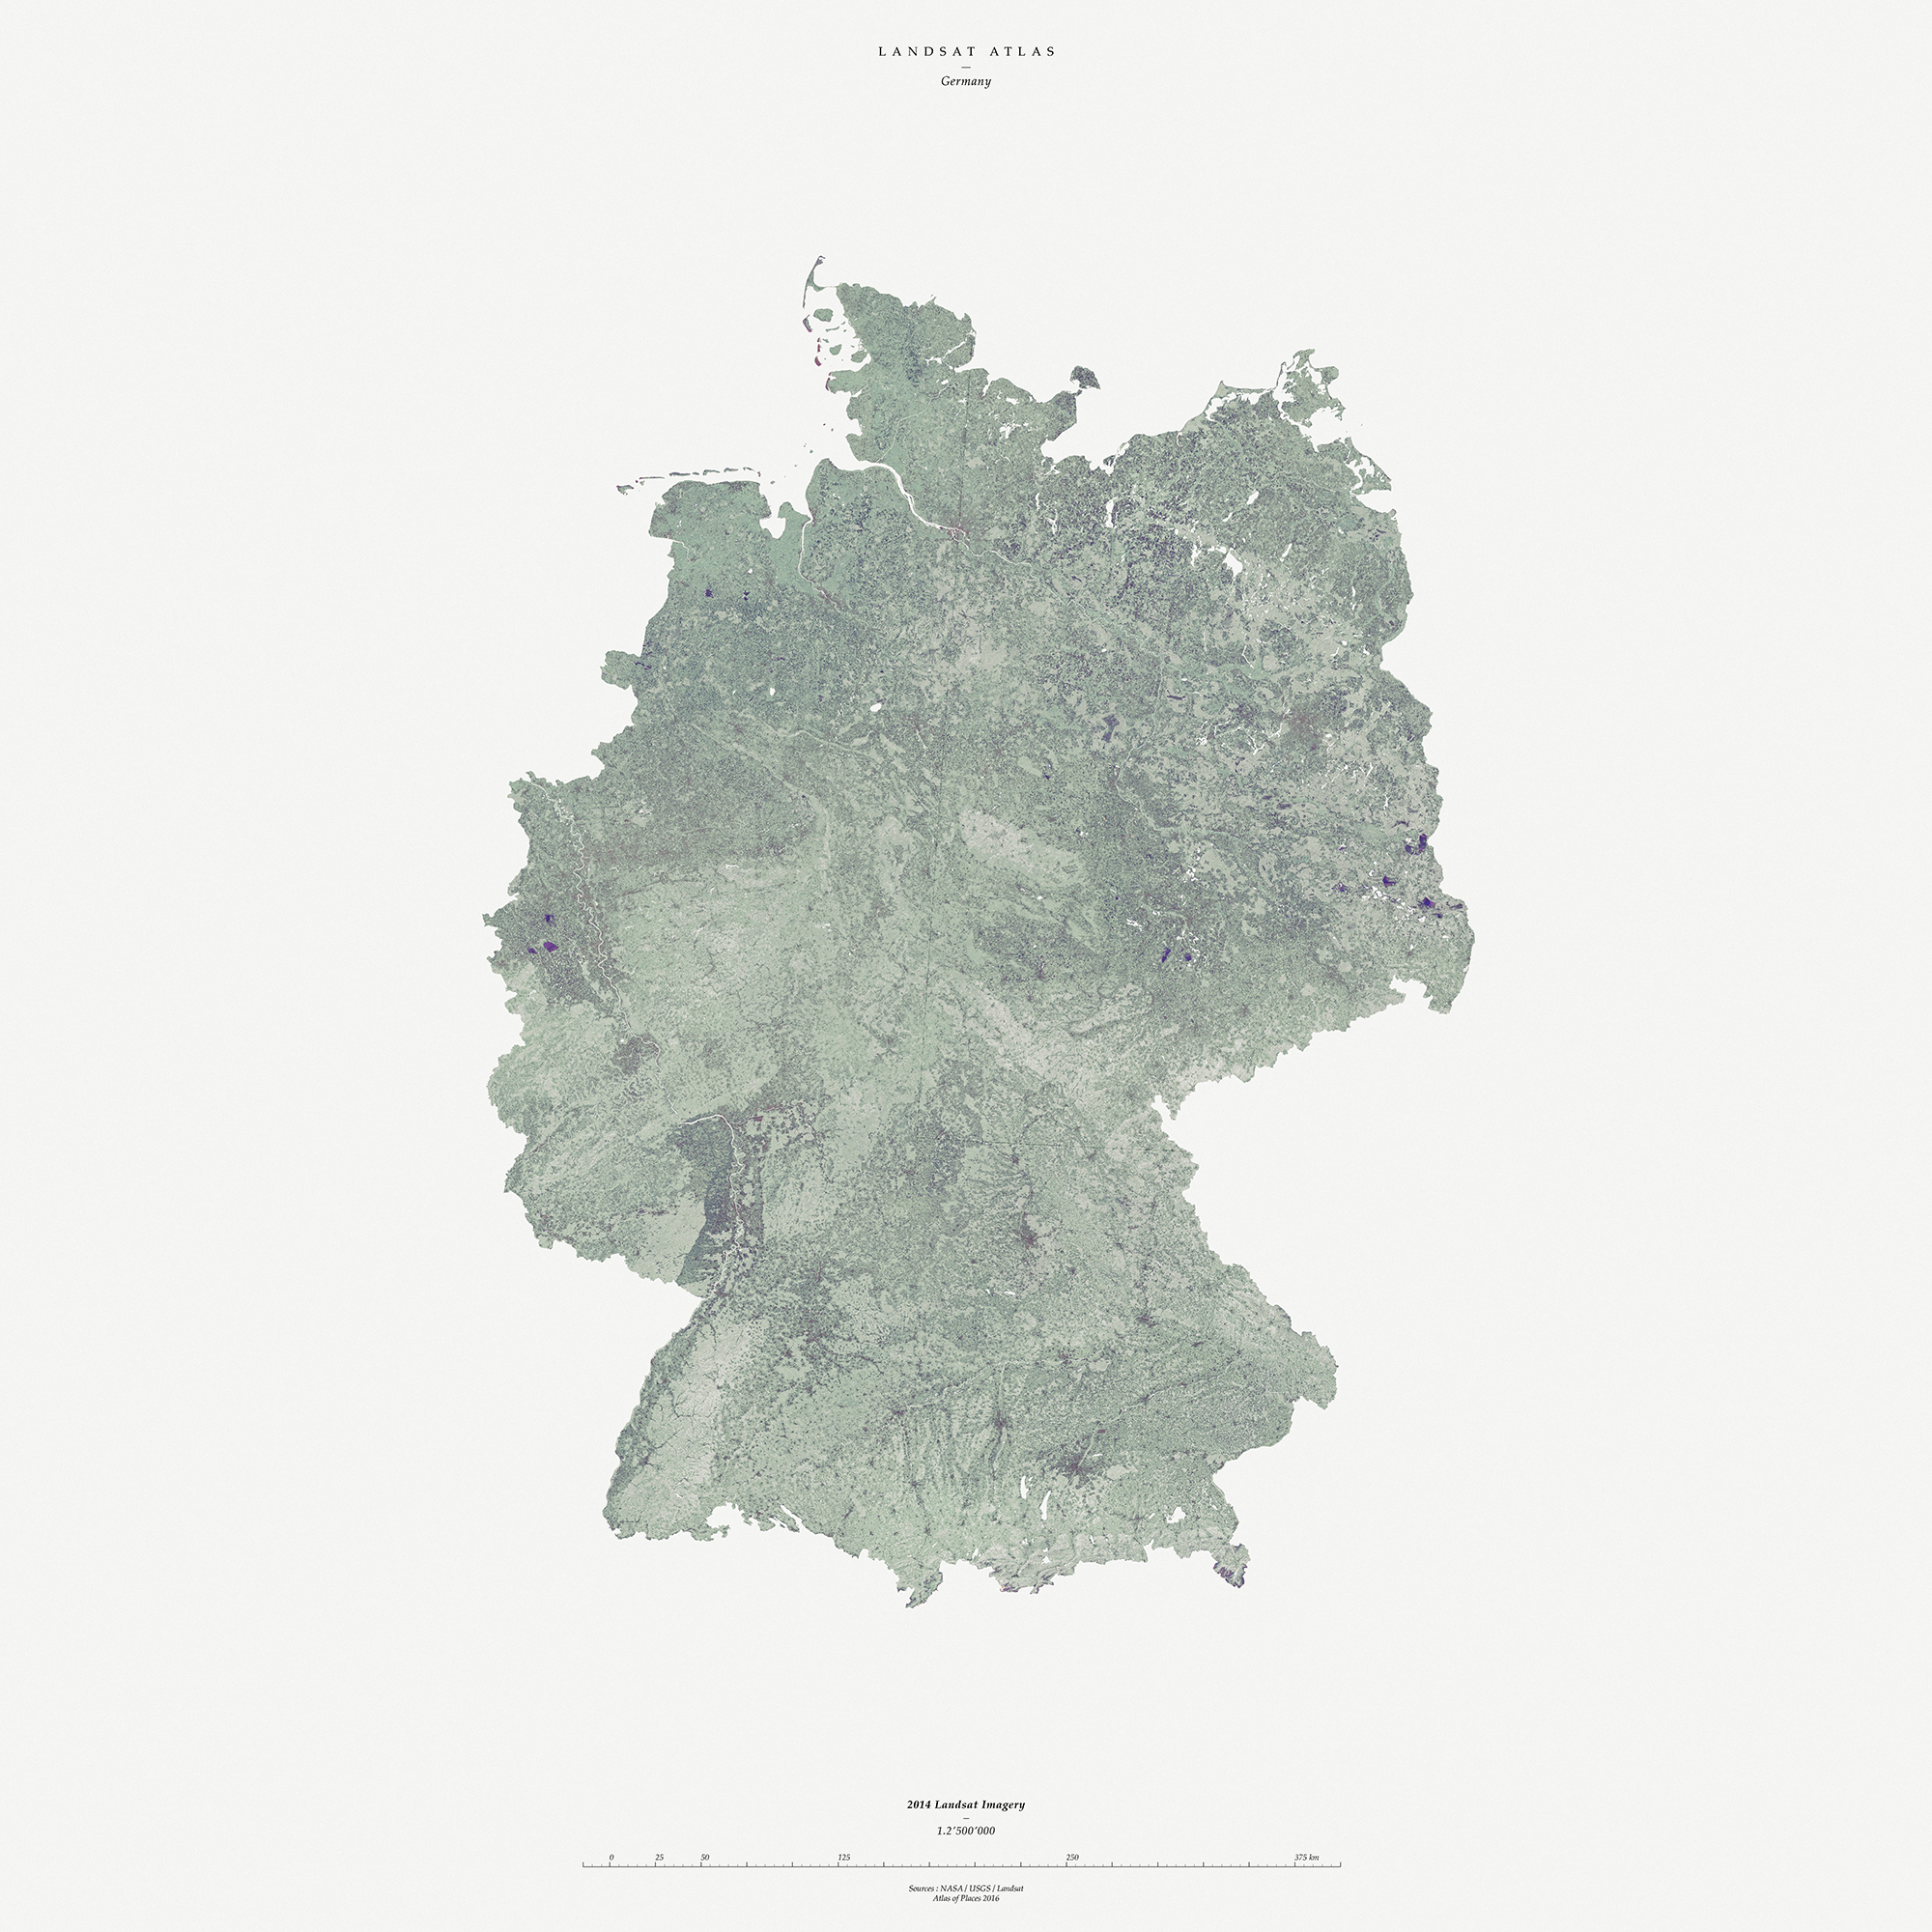 Atlas of Landsat I